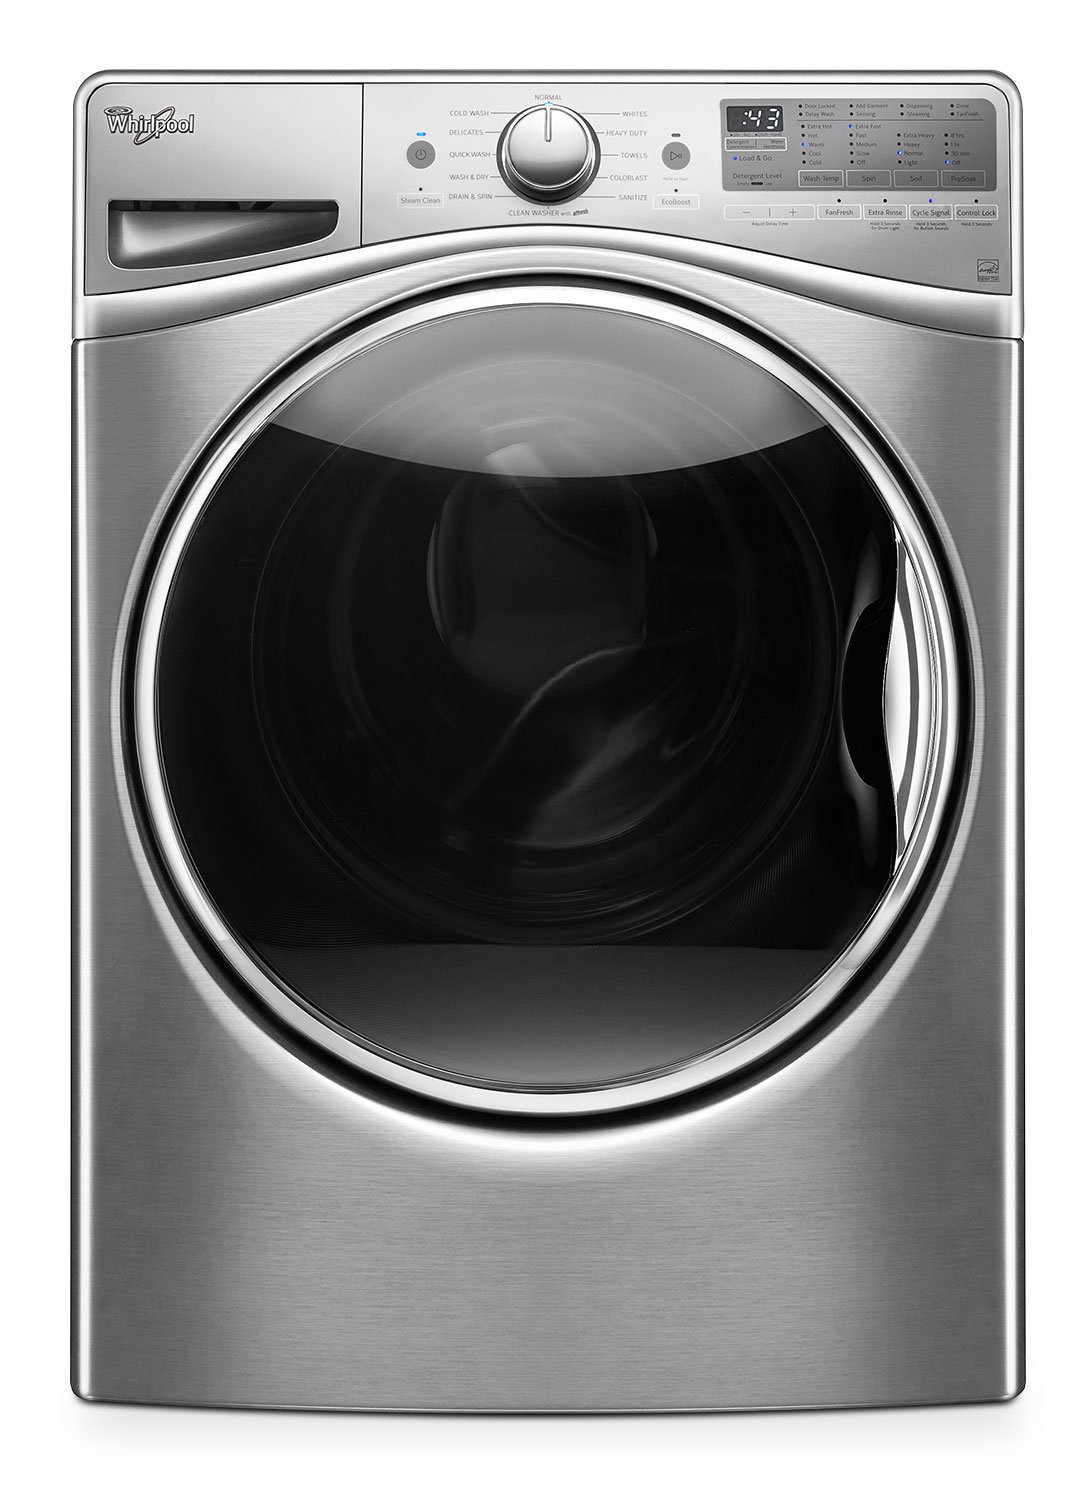 Washers and Dryers - Whirlpool 5.2 Cu. Ft. Front-Load Washer – WFW92HEFU